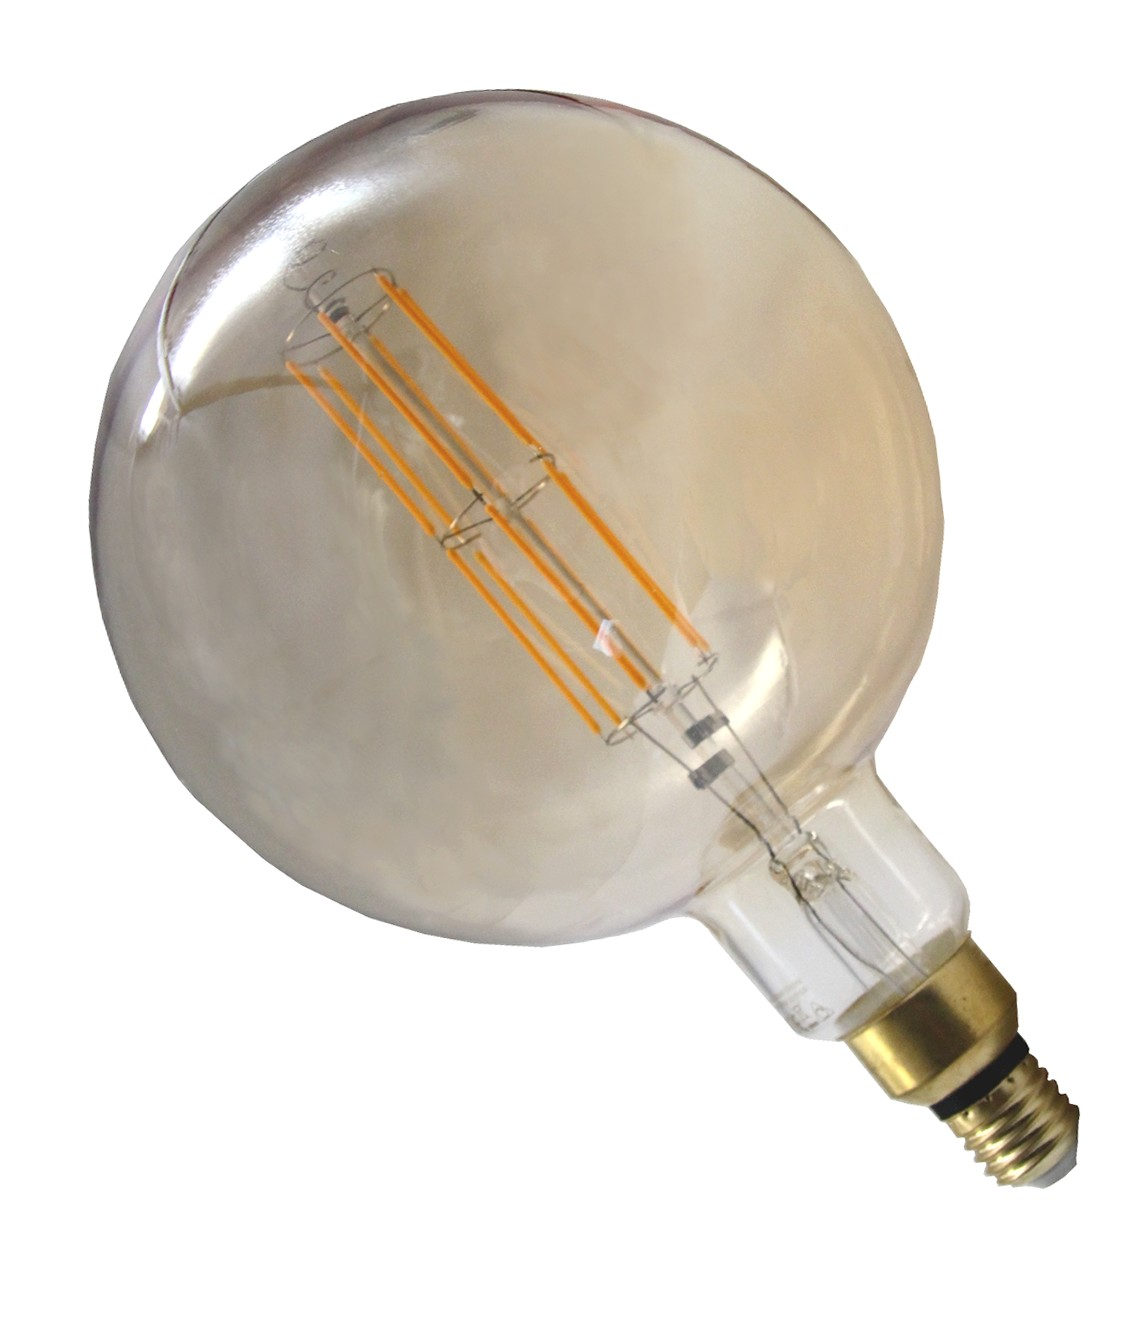 Ampoule E27 Dimmable Ampoule Led E27 Filament Dimmable 8w G200 Globe Xl Silamp